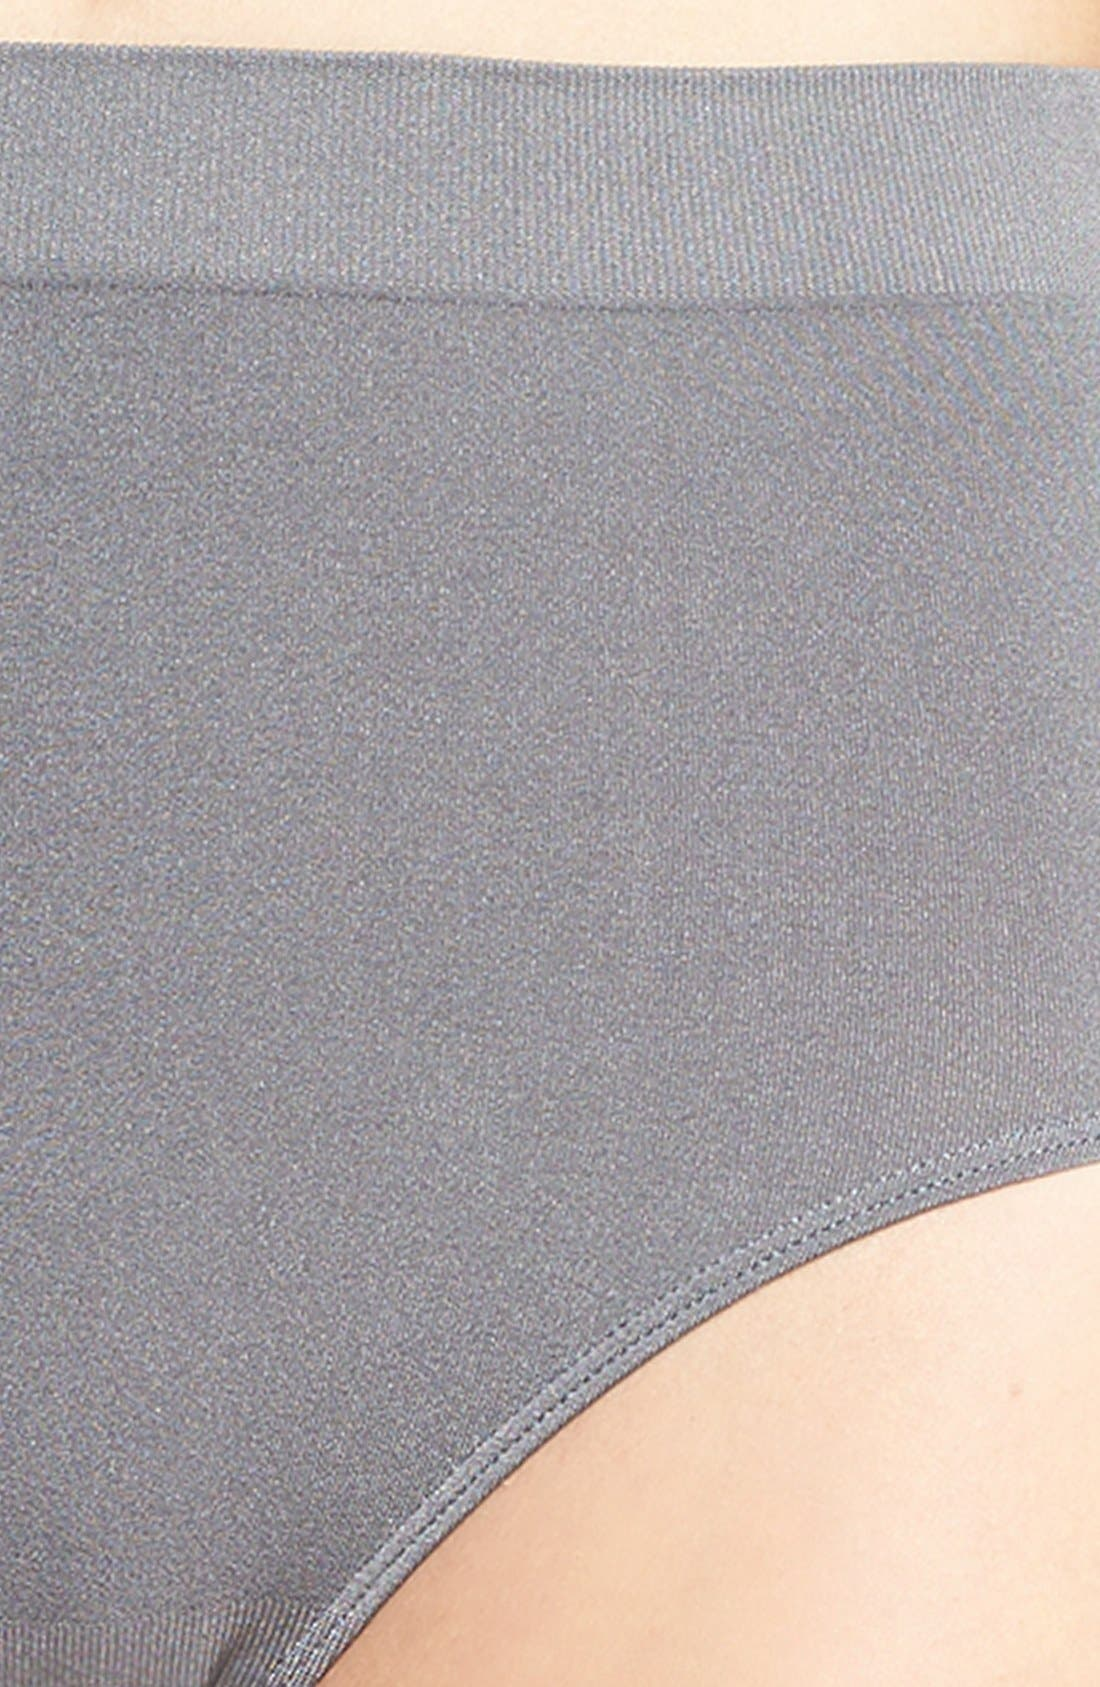 B Smooth Briefs,                             Alternate thumbnail 102, color,